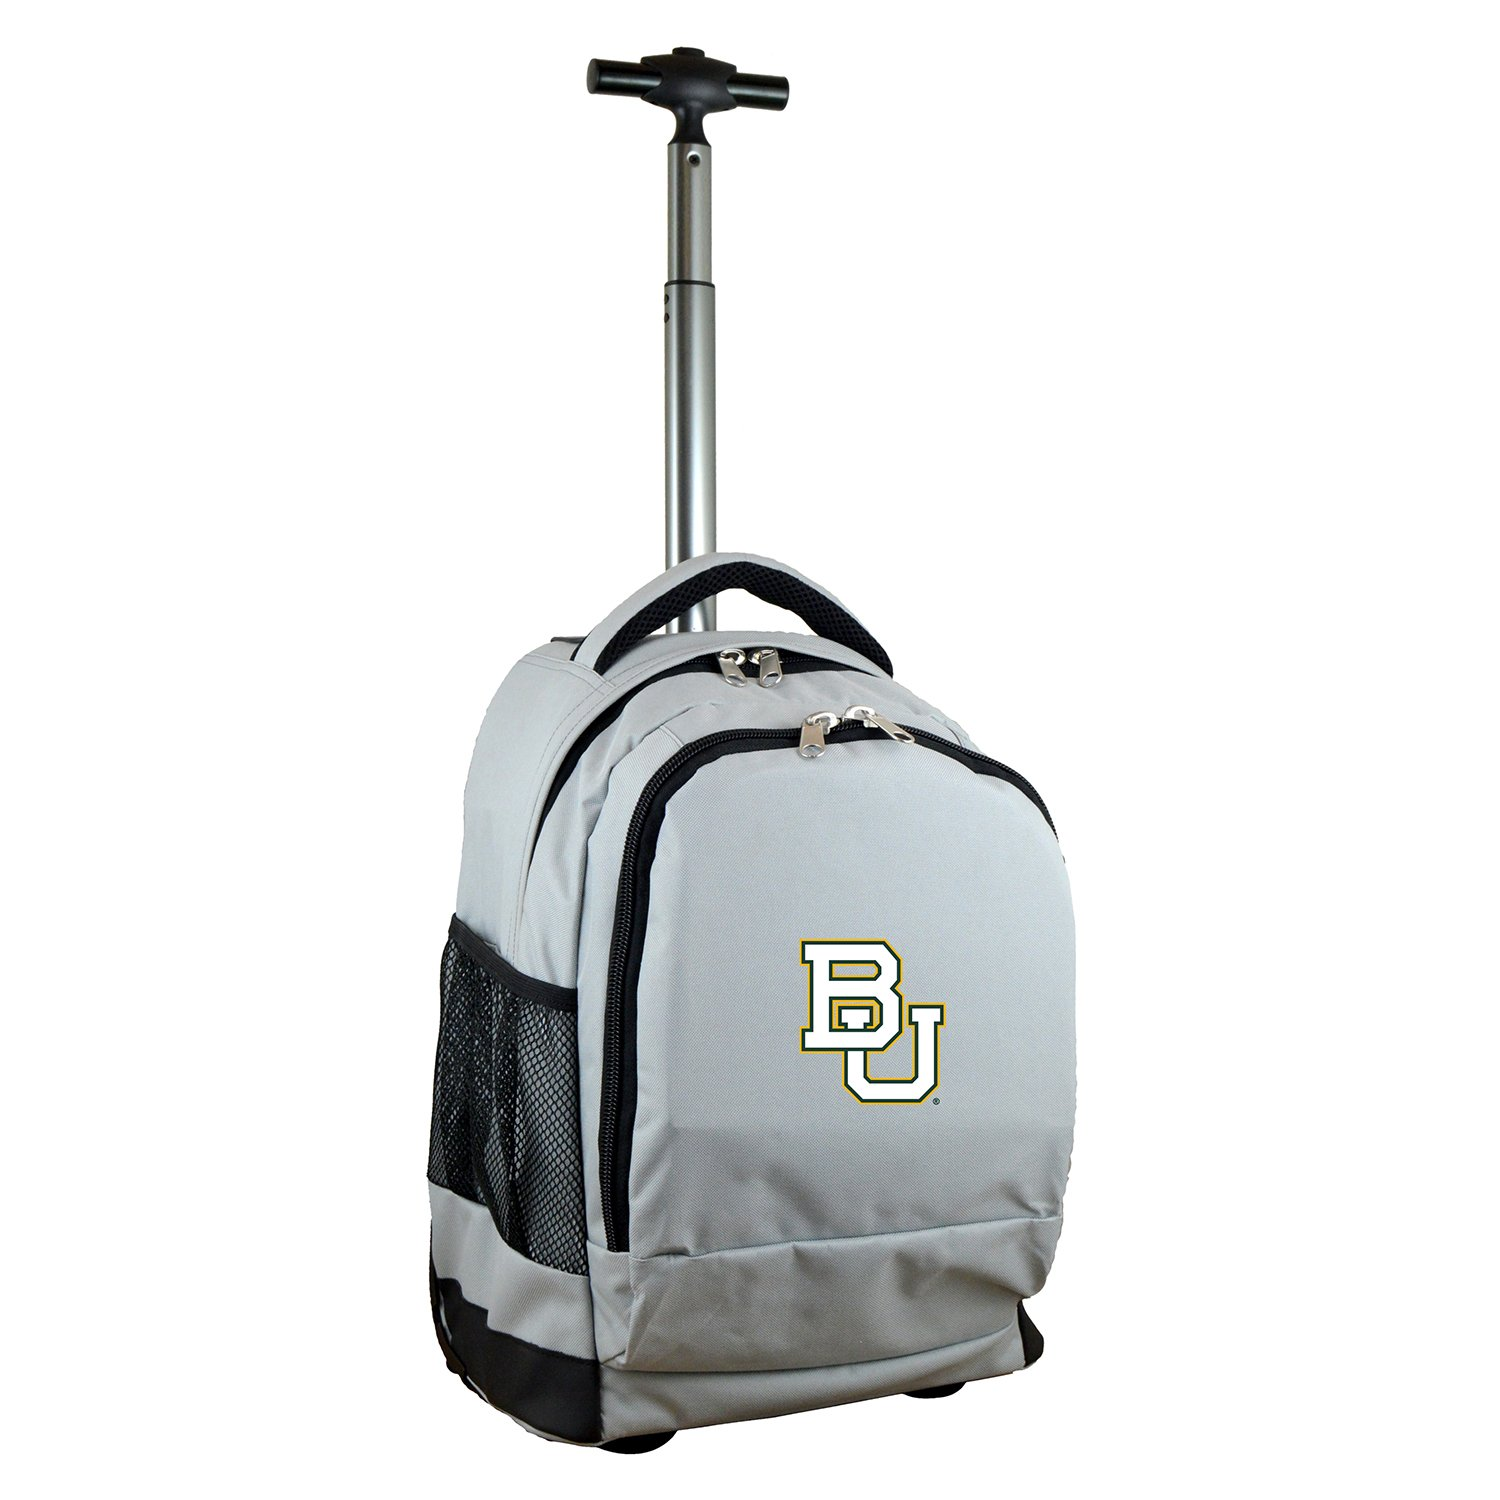 Denco NCAA Baylor Bears Expedition Wheeled Backpack, 19-inches, Grey by Denco (Image #1)